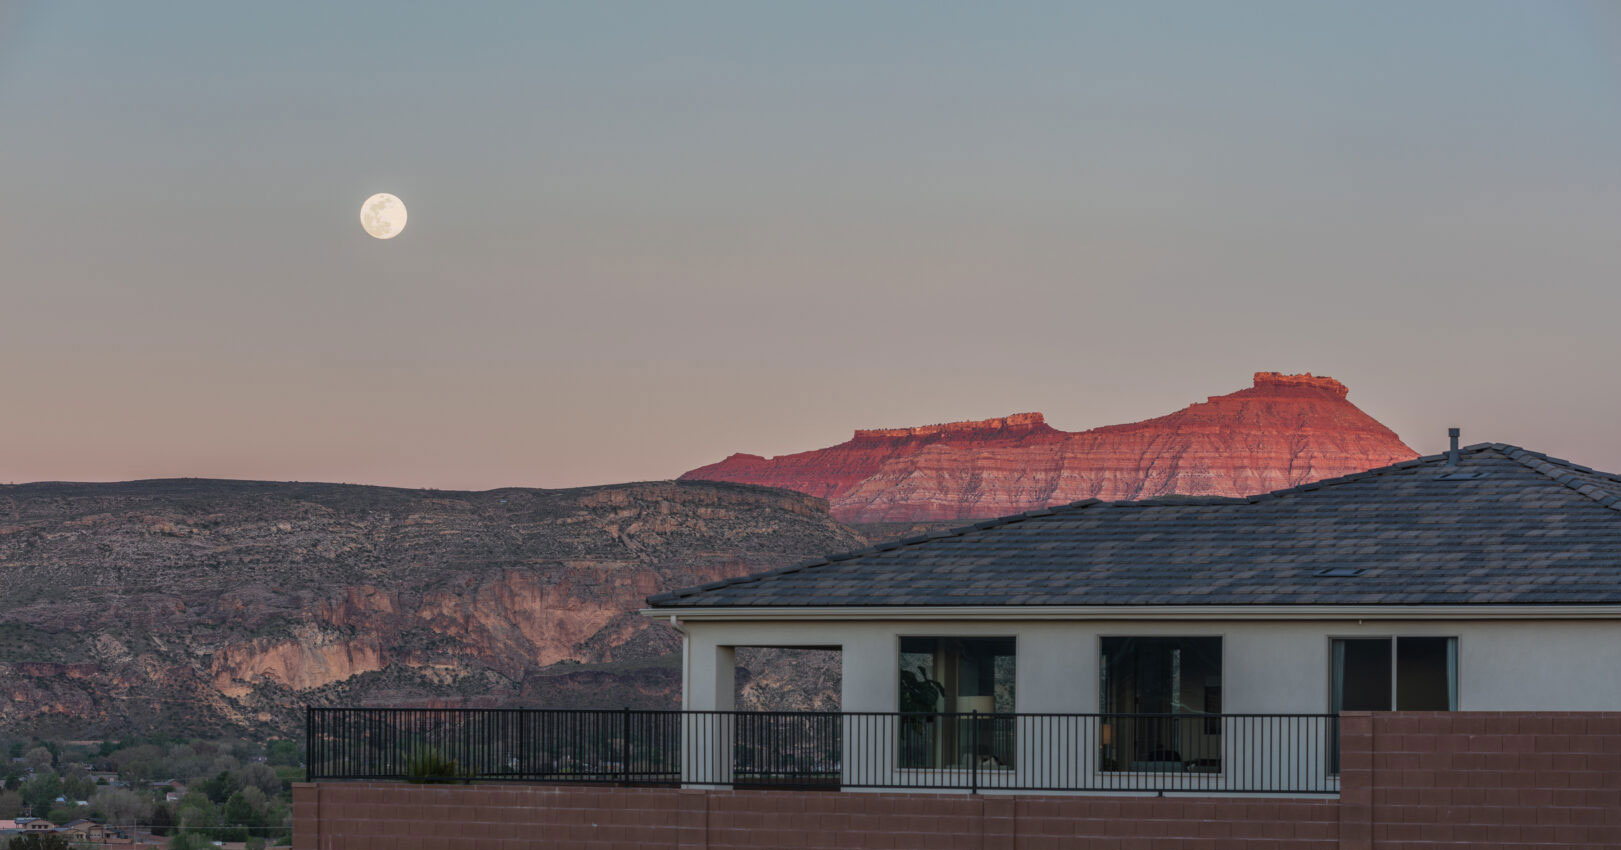 Zion Vista Home with beautiful backdrop